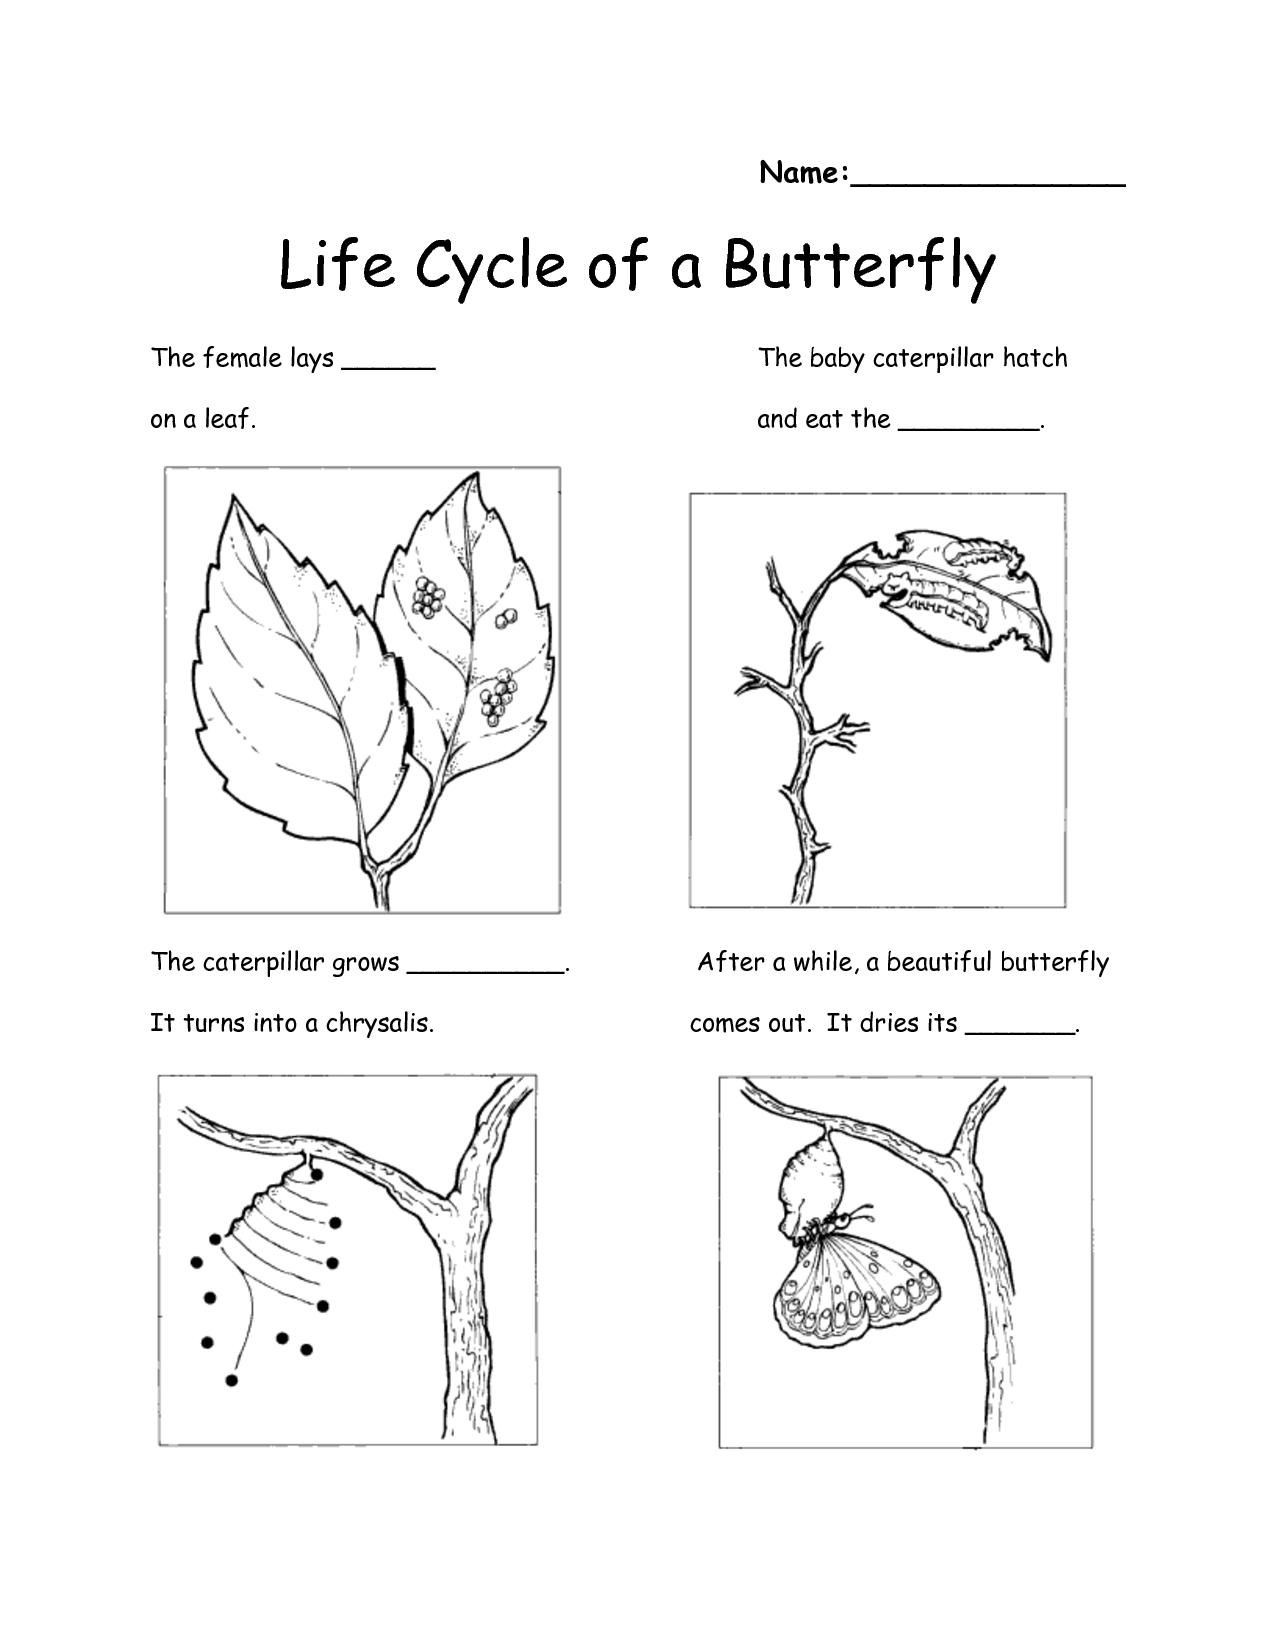 Second Grade Science Worksheets Free Free Printable Worksheets for Science 2nd Grade